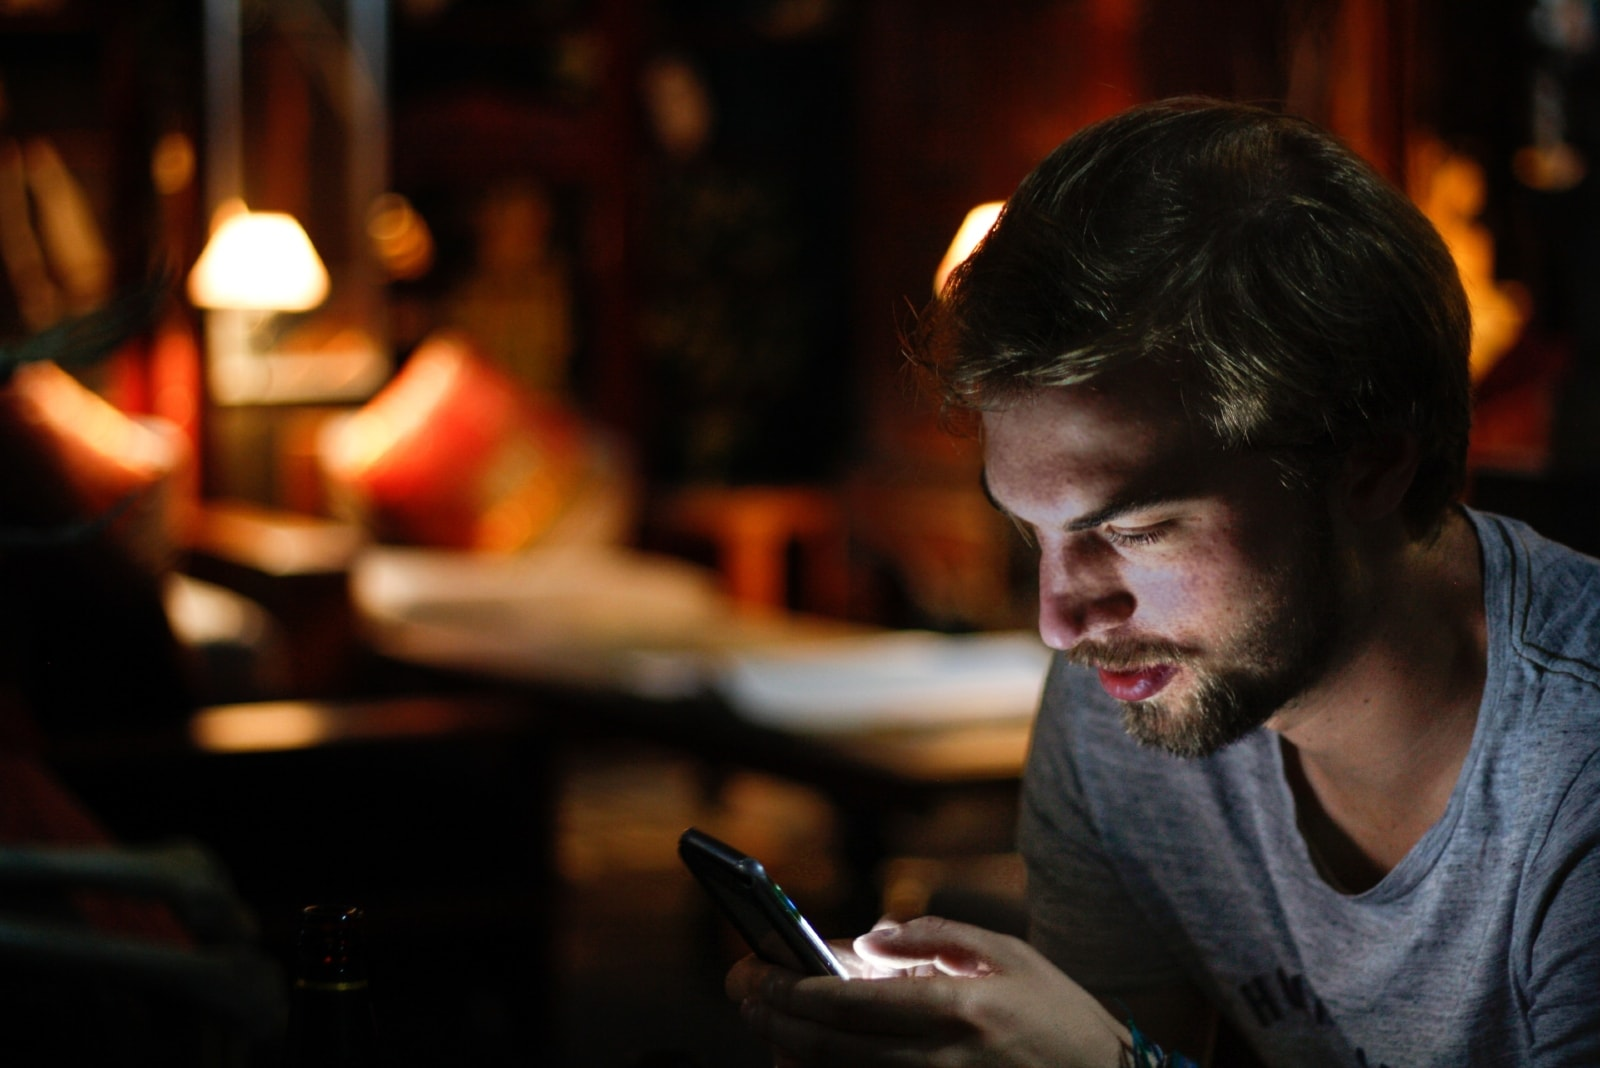 man using phone while sitting indoor